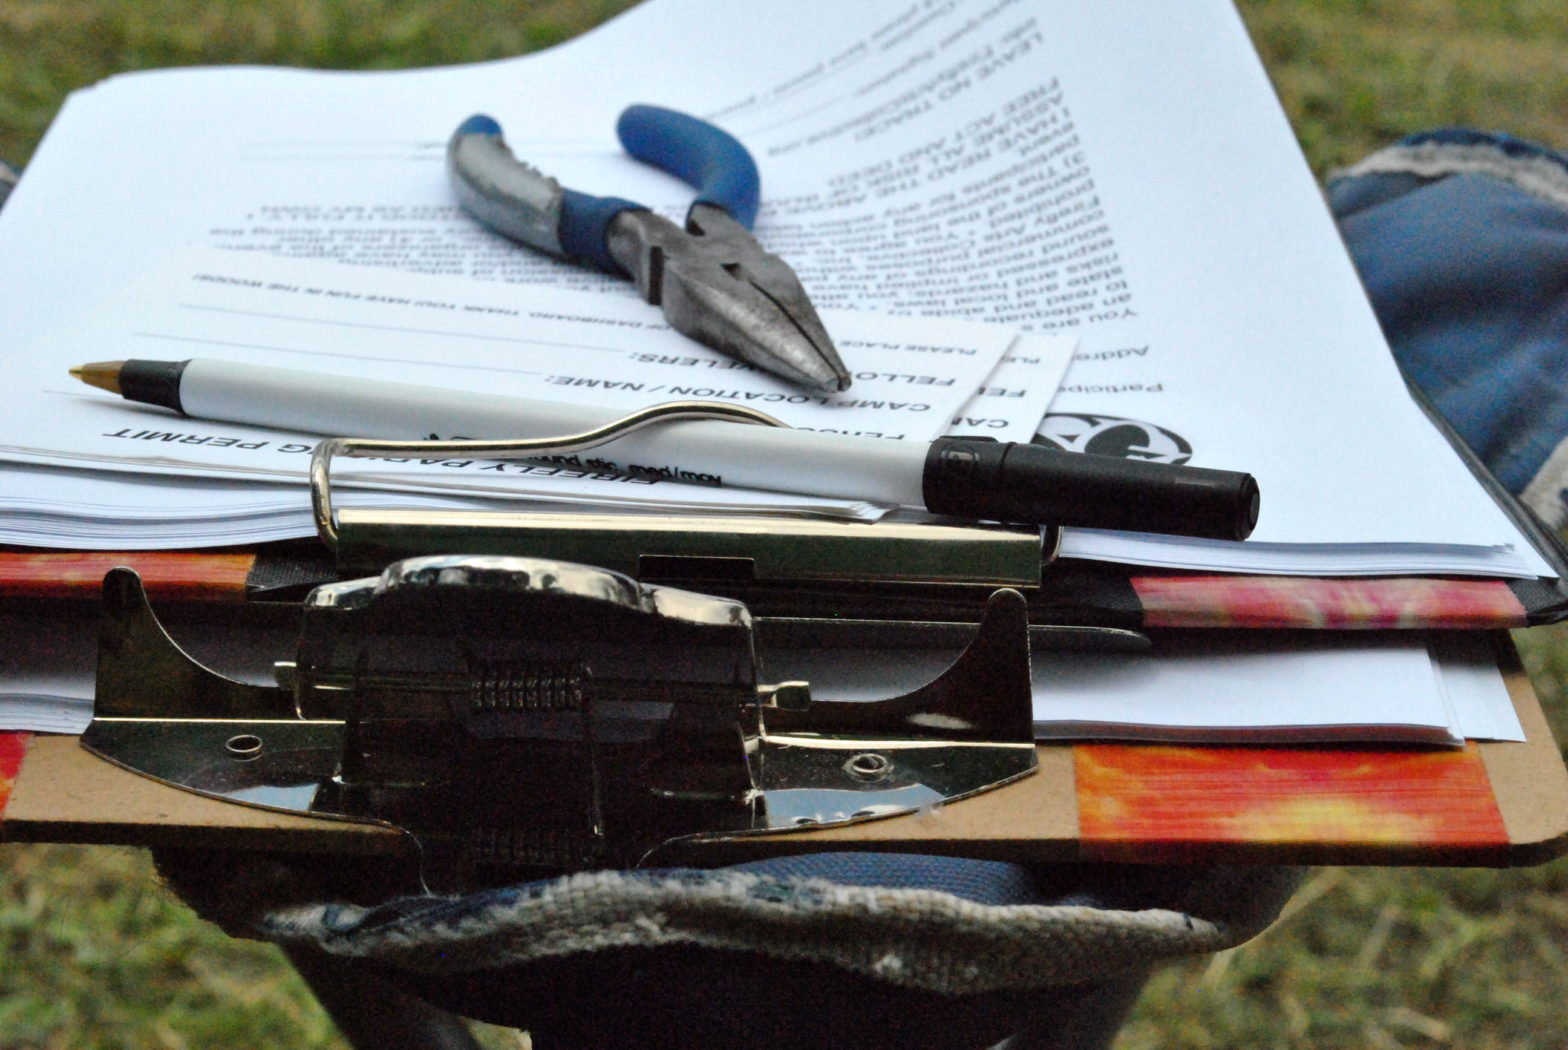 a clipboard and survey for canvassing (photo by r0b0tsrfun on flickr)